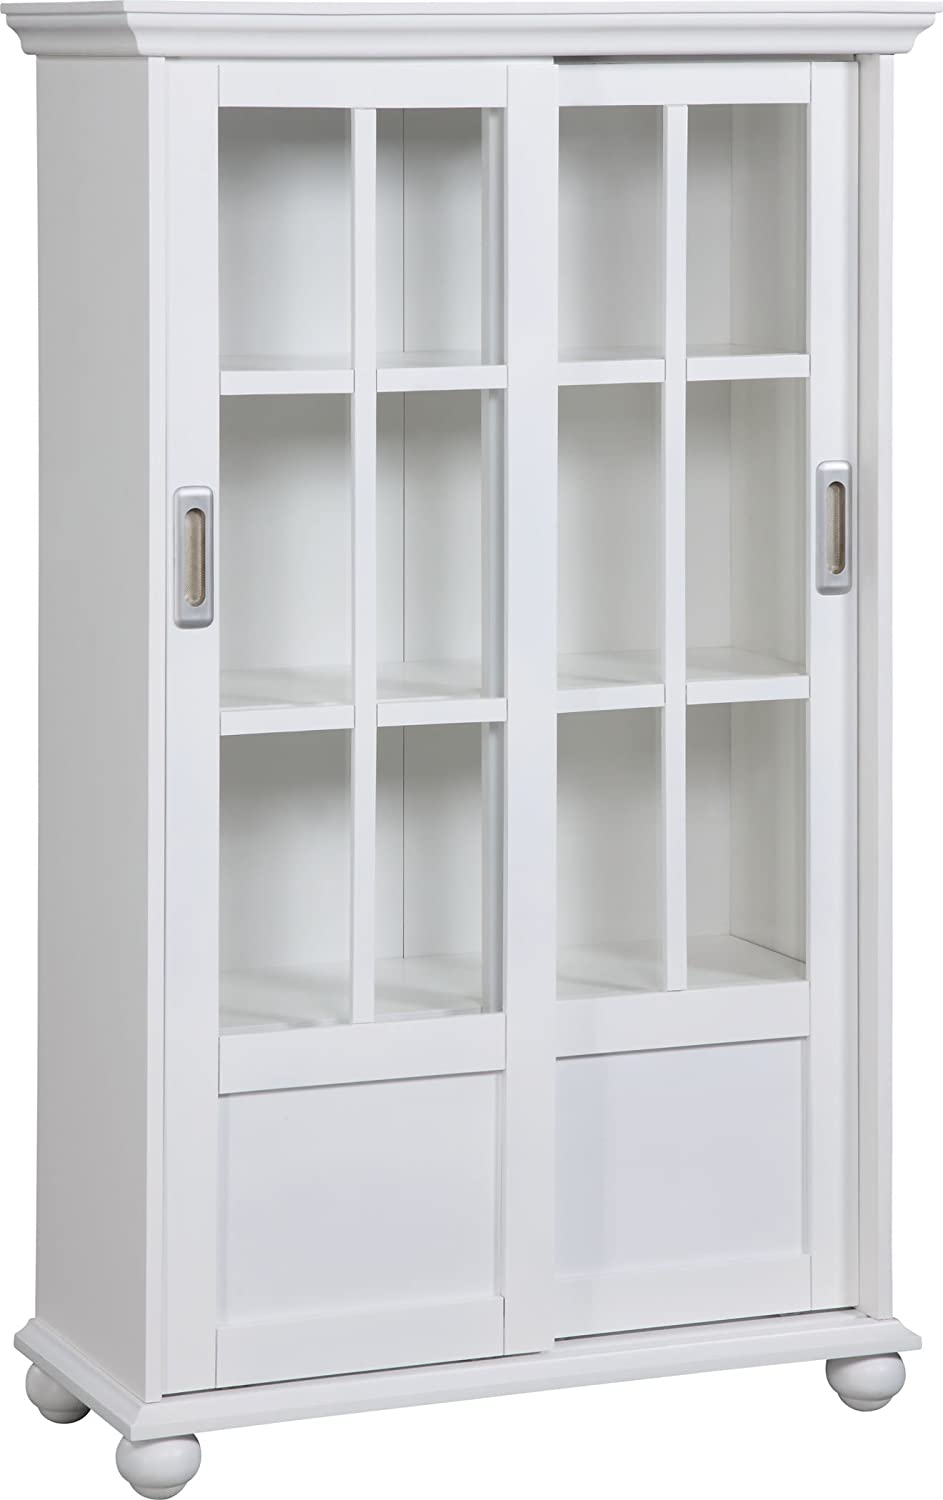 Amazon.com Altra 9448096 Bookcase with Sliding Glass Doors White Kitchen u0026 Dining  sc 1 st  Amazon.com : bookcases doors - pezcame.com